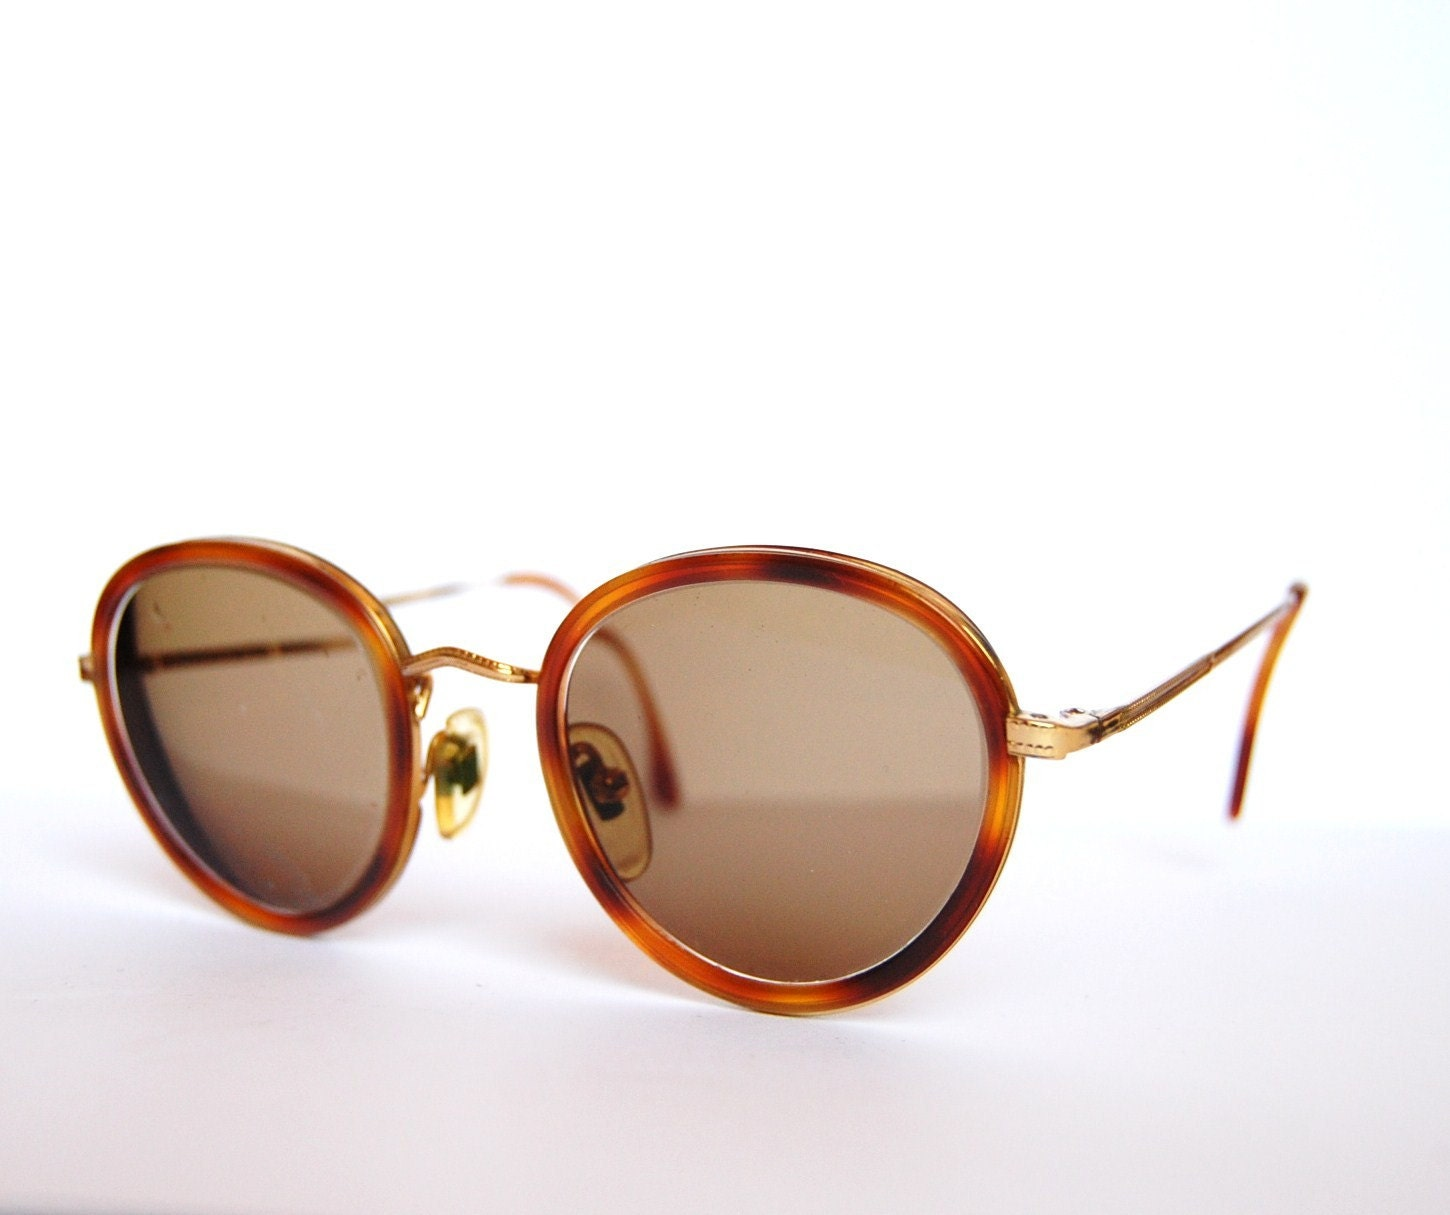 Vintage sunglasses Italy Fedom by RetroEyewear on Etsy from etsy.com